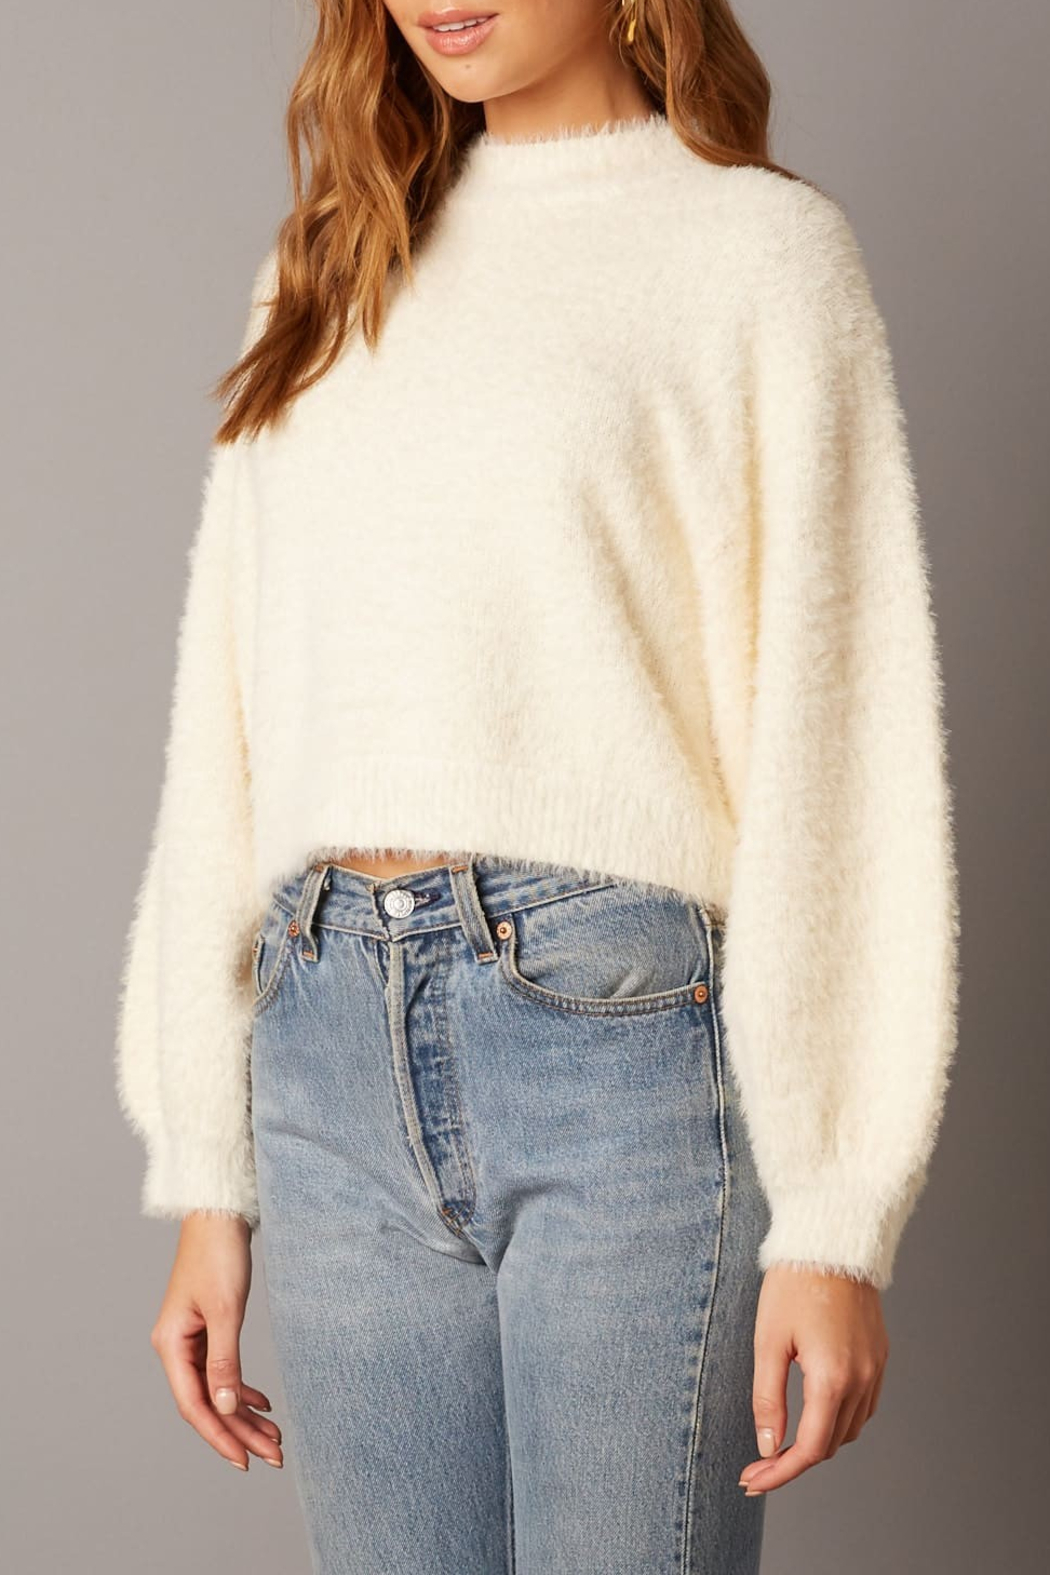 Cotton Candy LA Fuzzy Sweater Ivory - Side Cropped Image